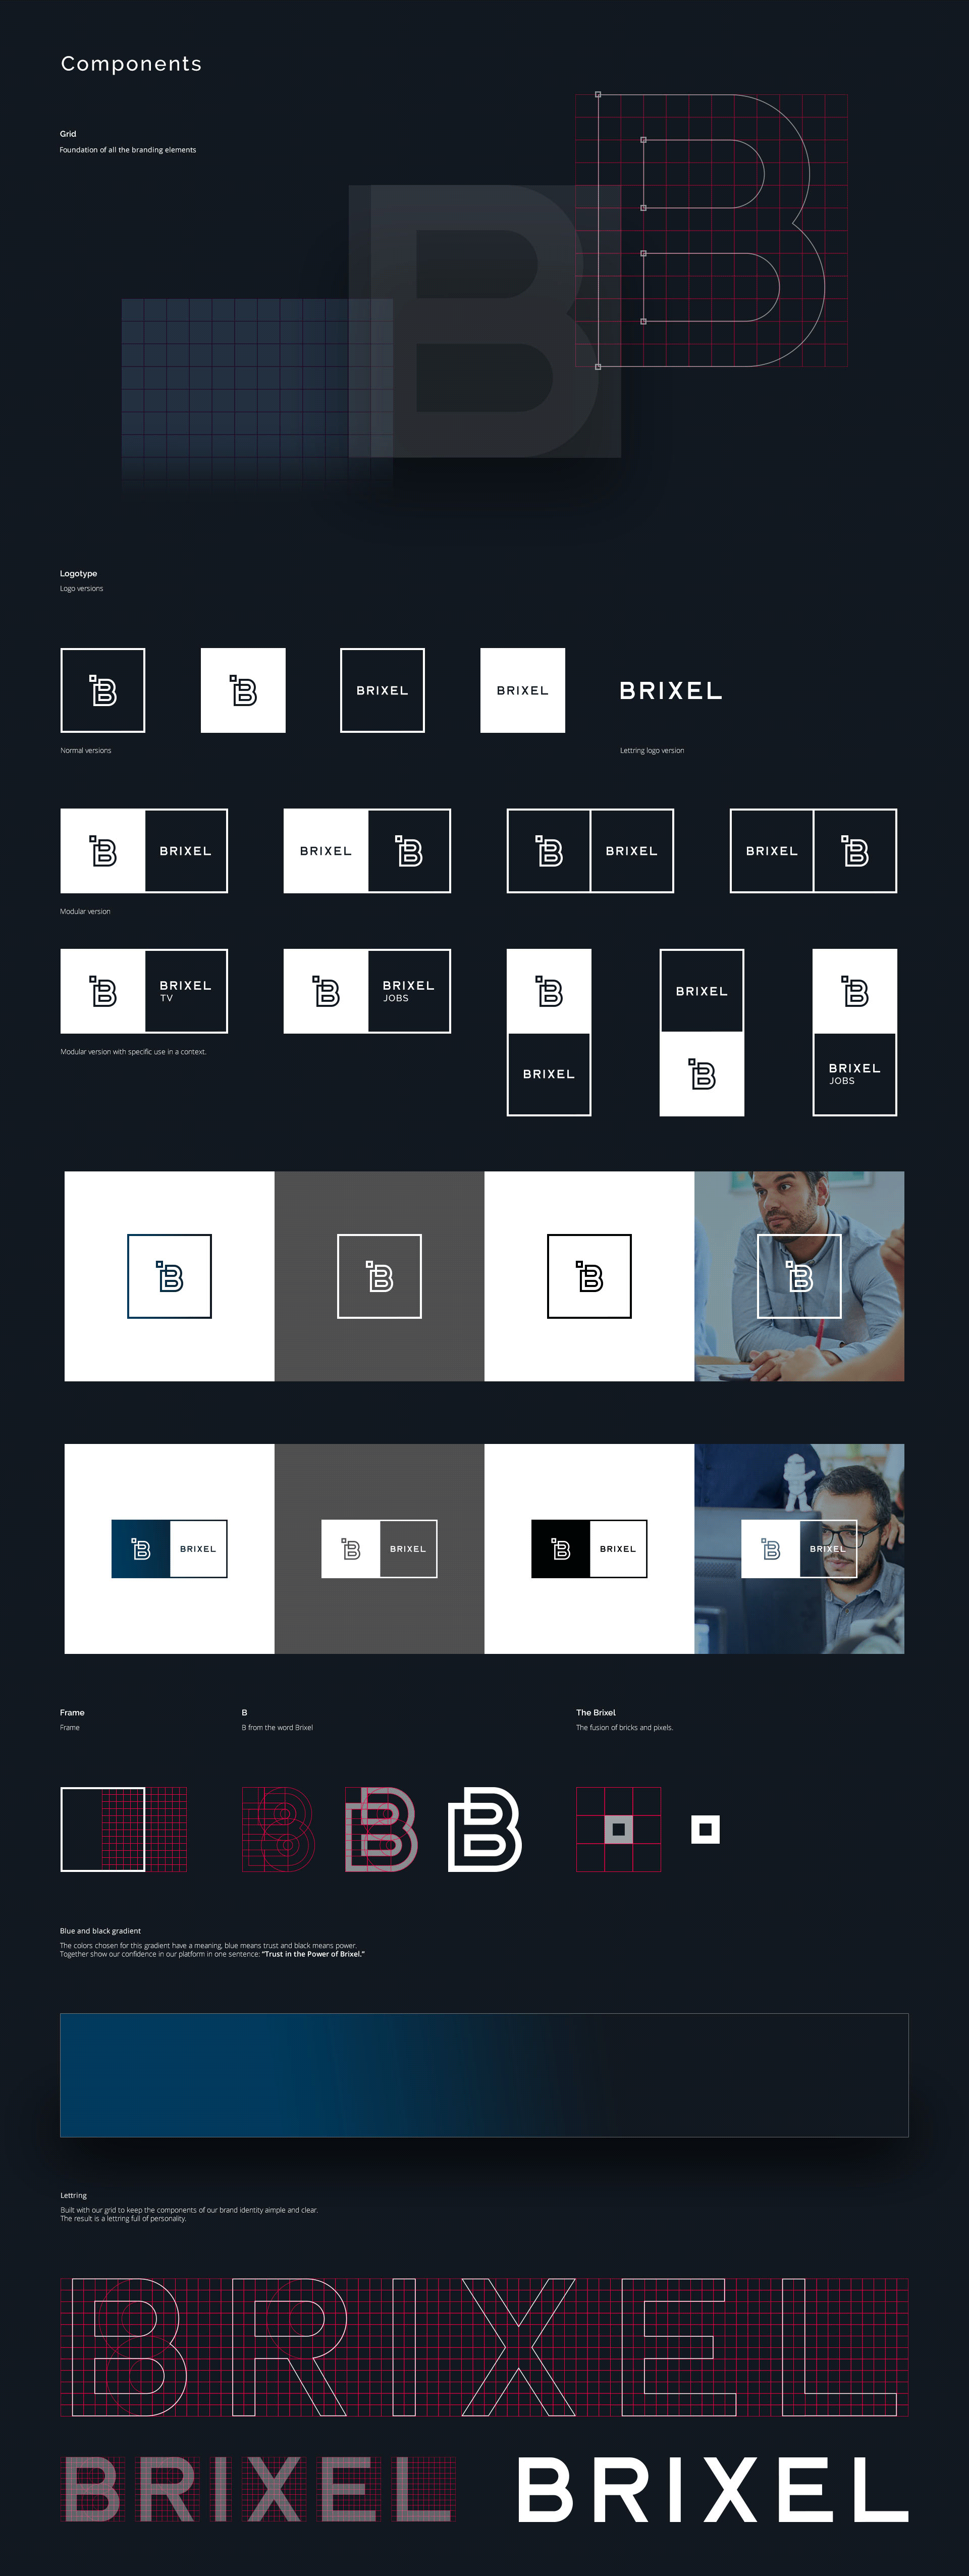 Showcase logo components, variations and applications.